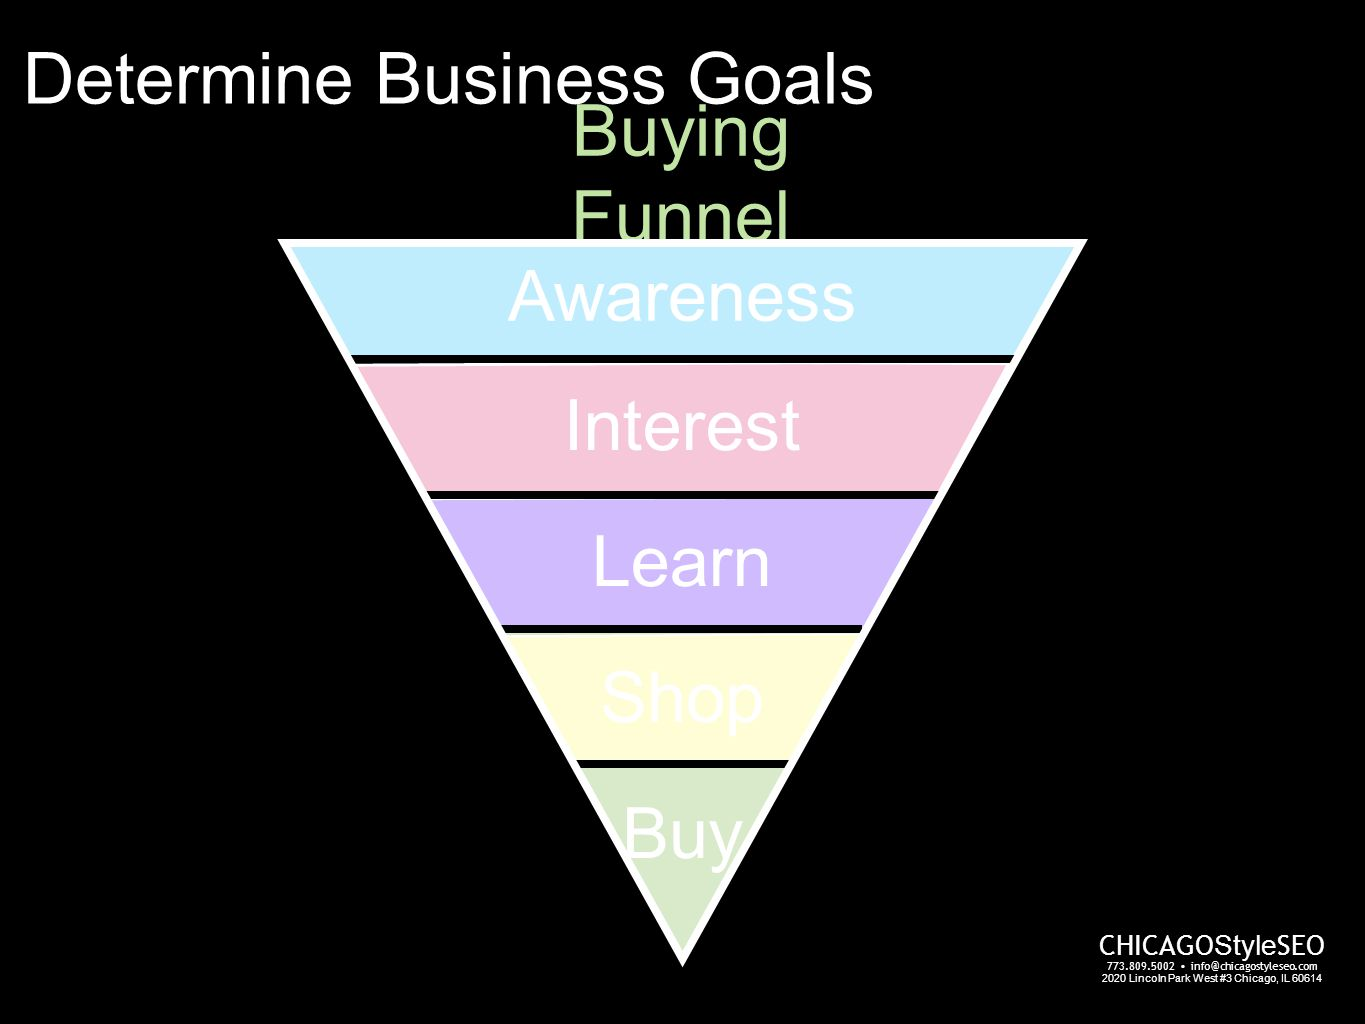 CHICAGO Style SEO 773.809.5002 info@chicagostyleseo.com 2020 Lincoln Park West #3 Chicago, IL 60614 Buying Funnel Awareness Interest Learn Shop Buy Determine Business Goals